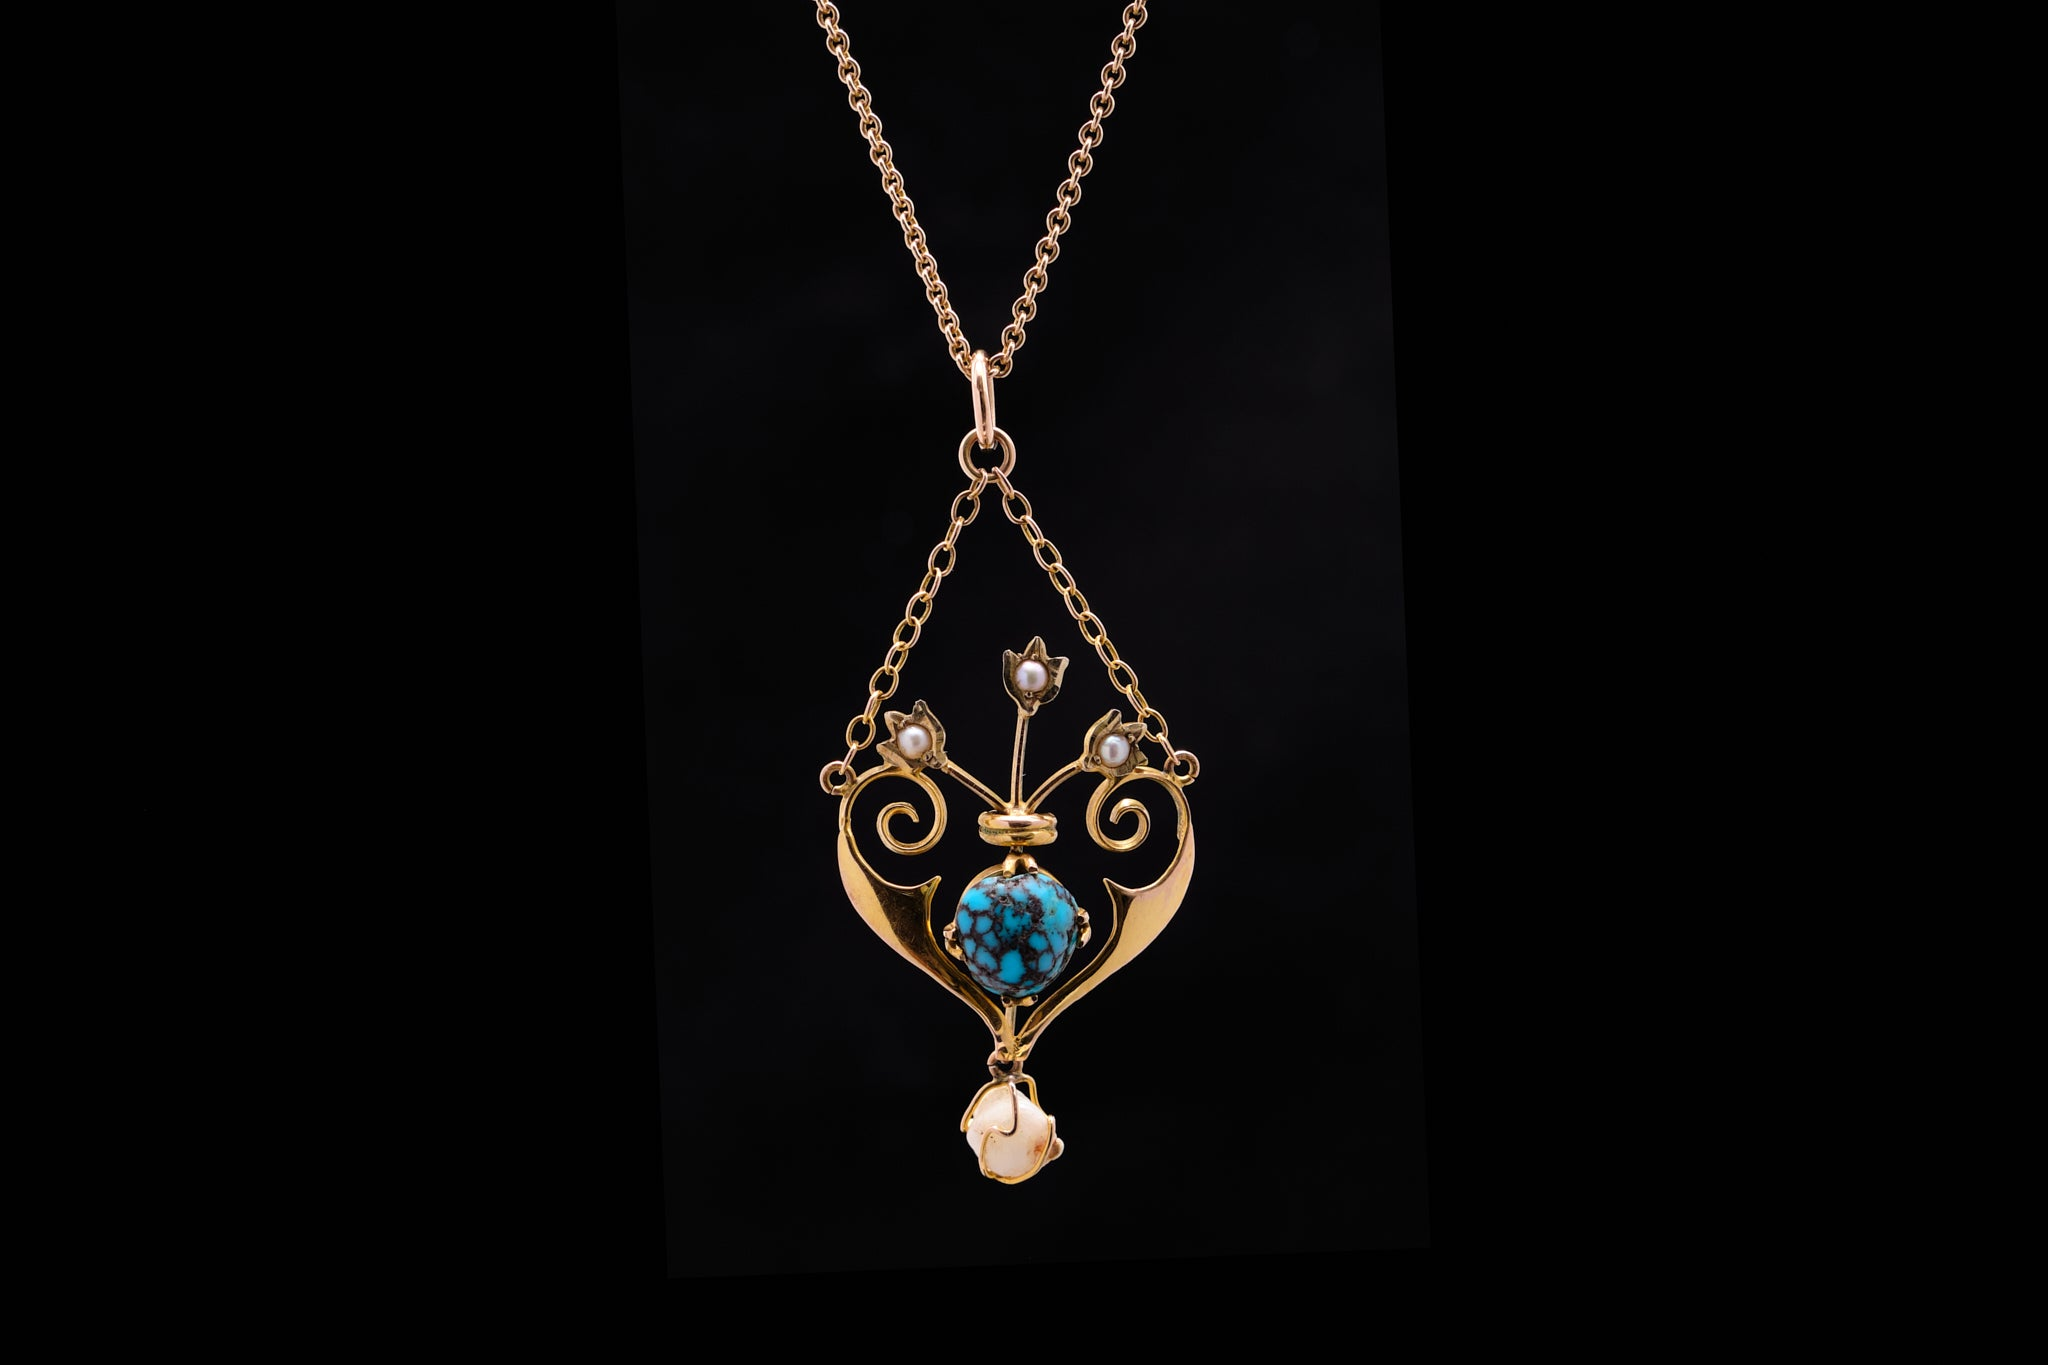 Edwardian Gold, Seed Pearl and Torquoise Pendant.